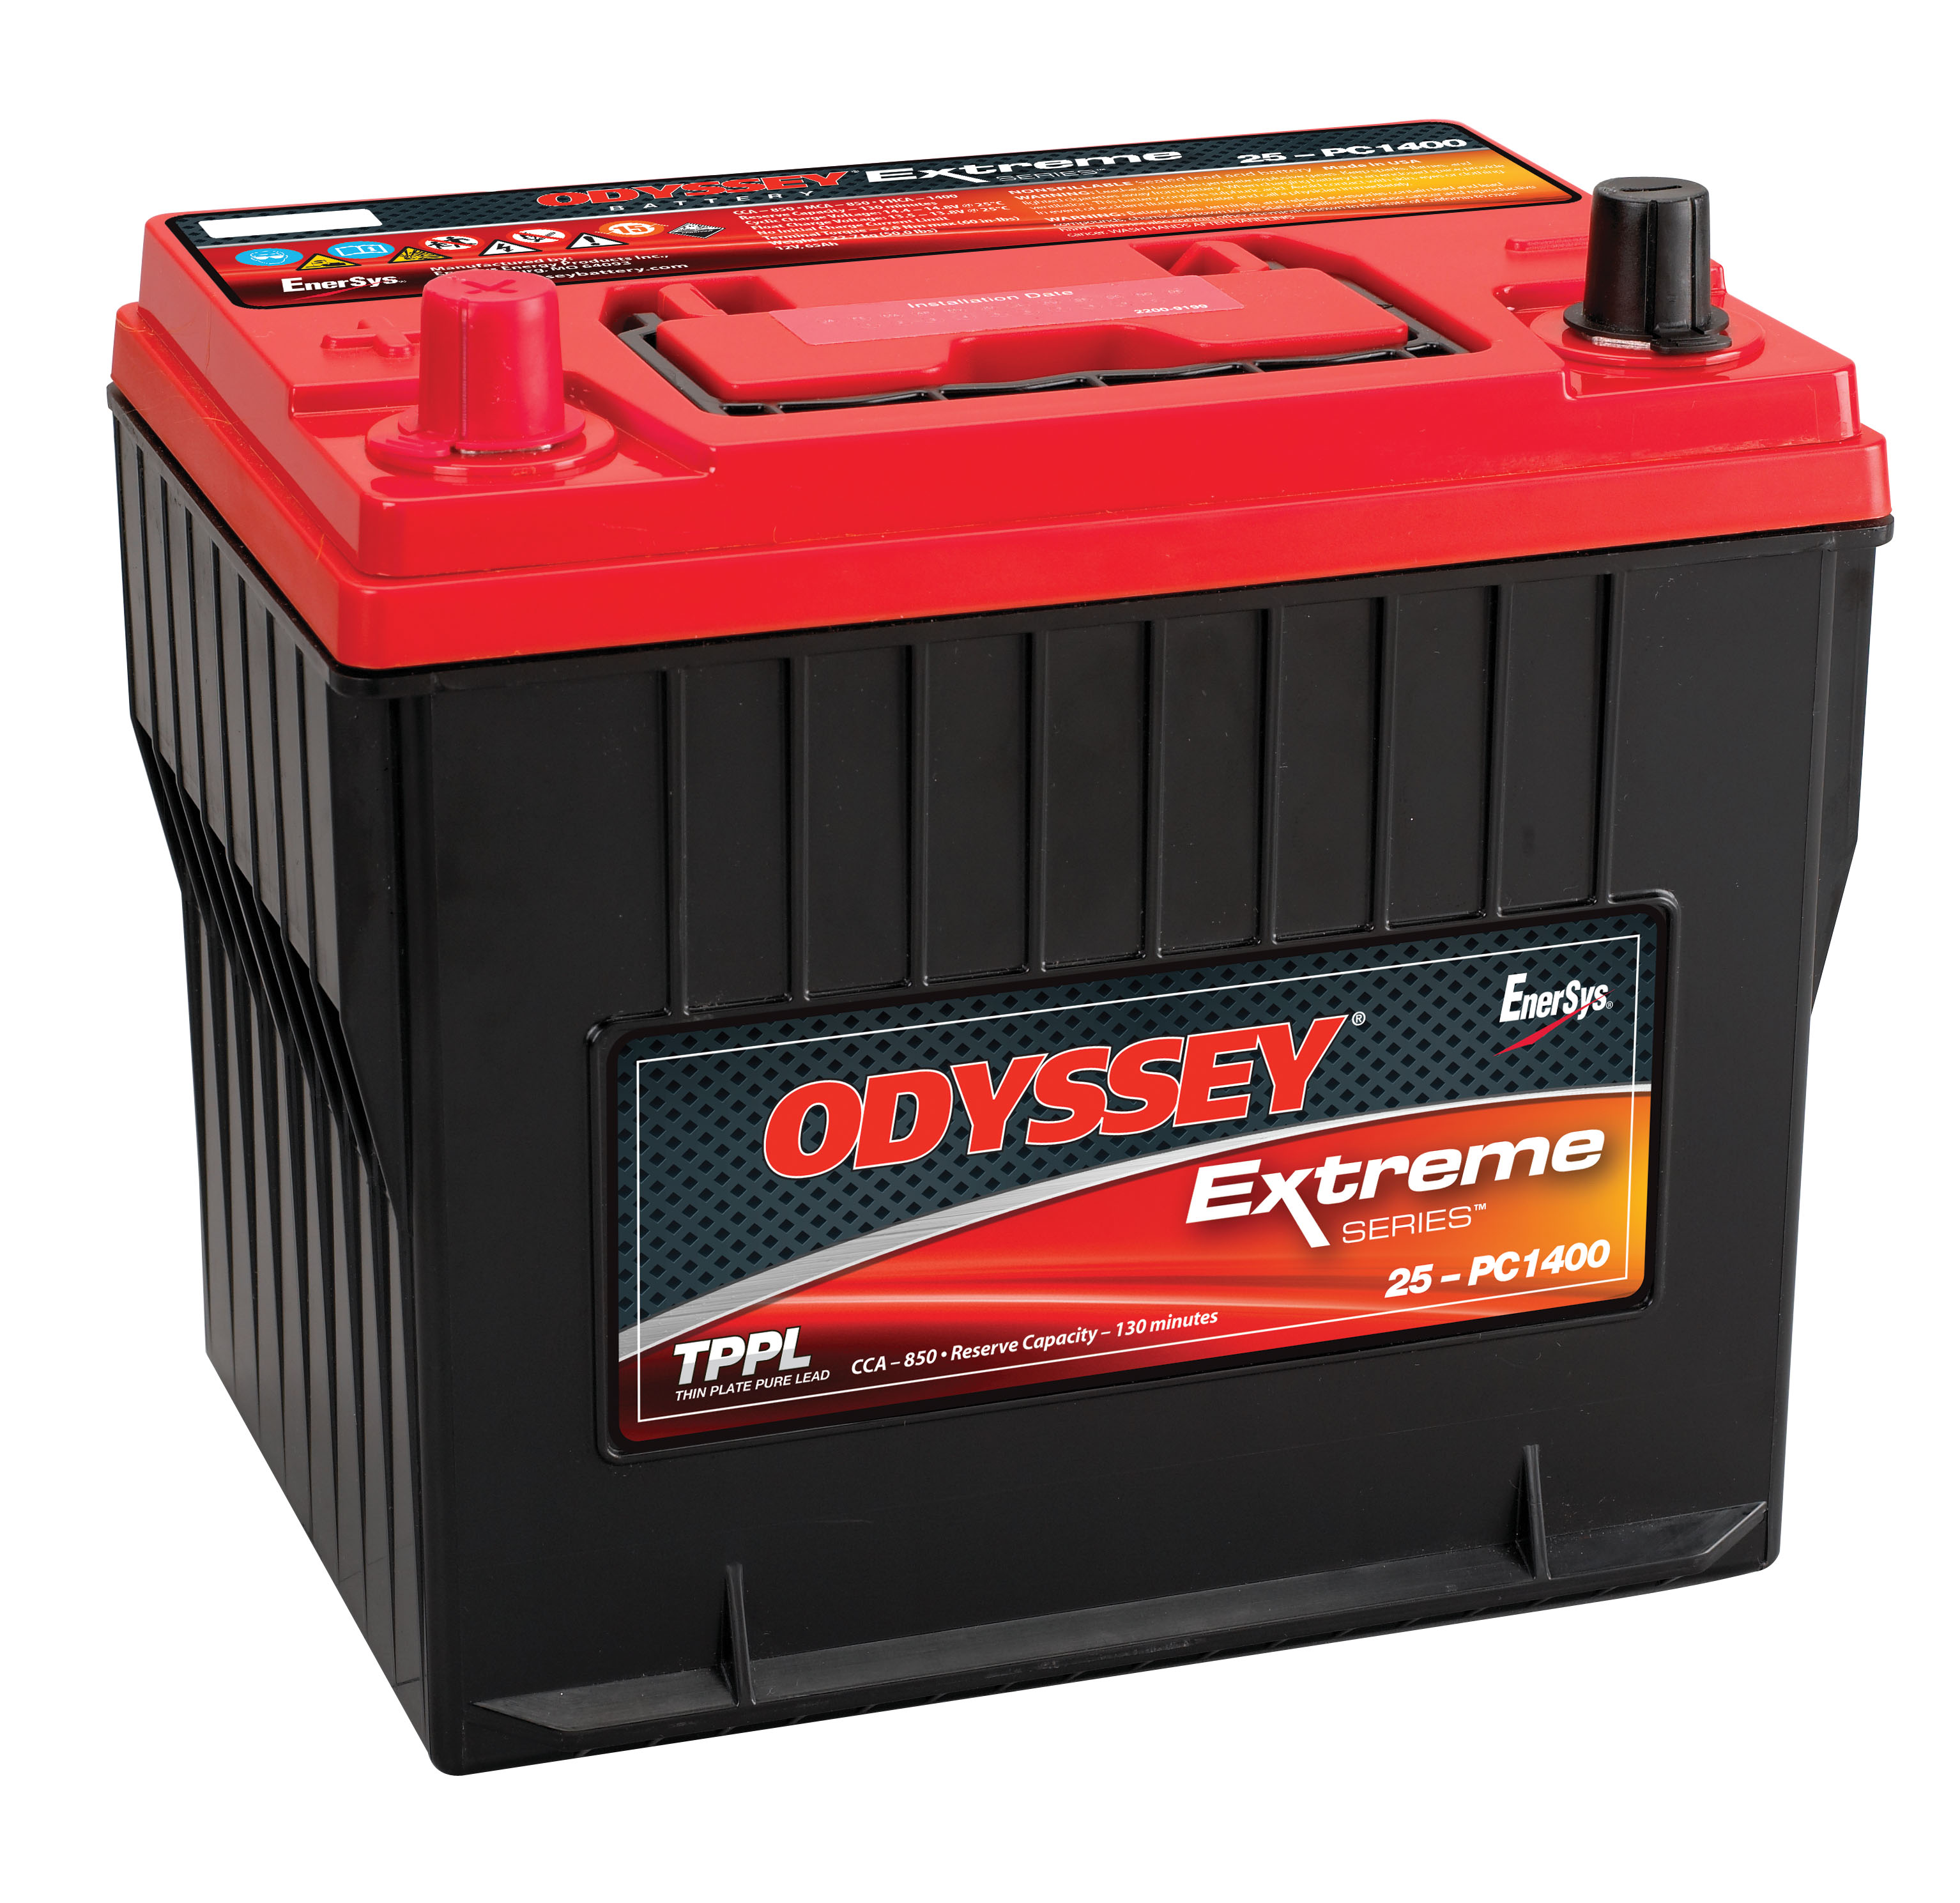 Odyssey Extreme 25-PC1400 Product Picture.jpg